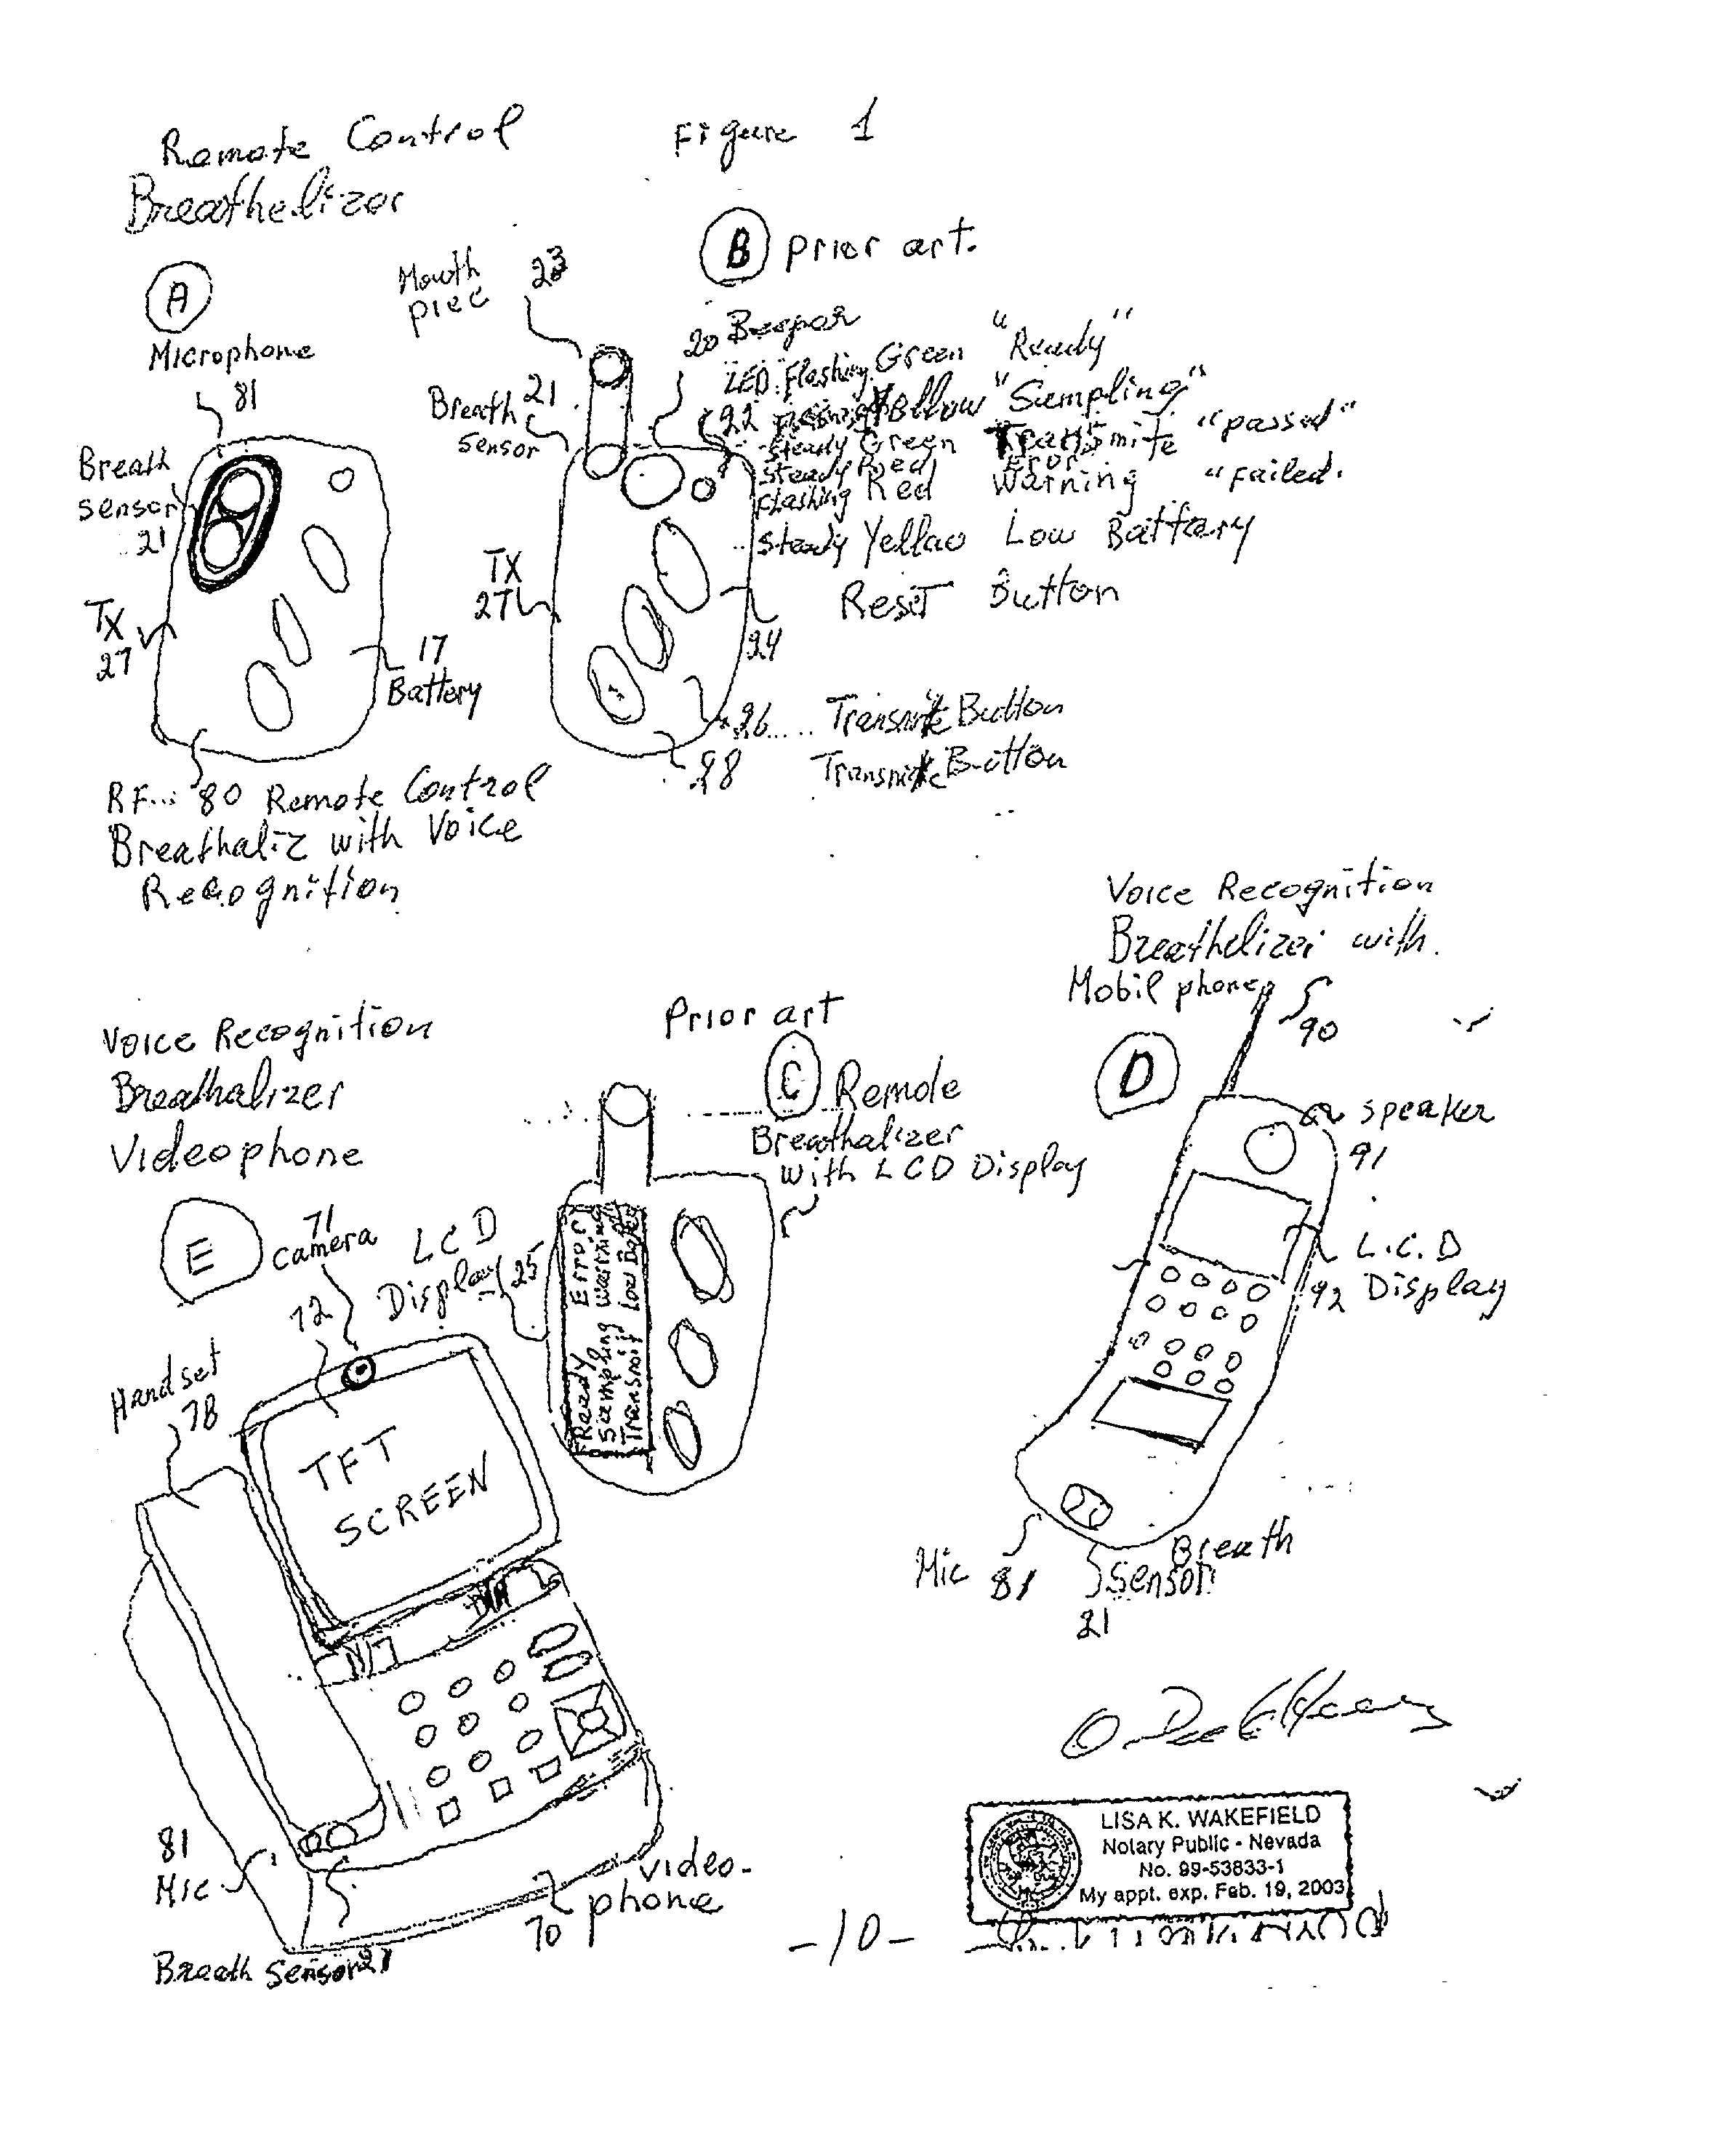 Lifesafer Interlock Wiring Diagram Operation Draeger Intoxalock Patent Us20020084130 Breathalyzer With Voice Recognition Google On